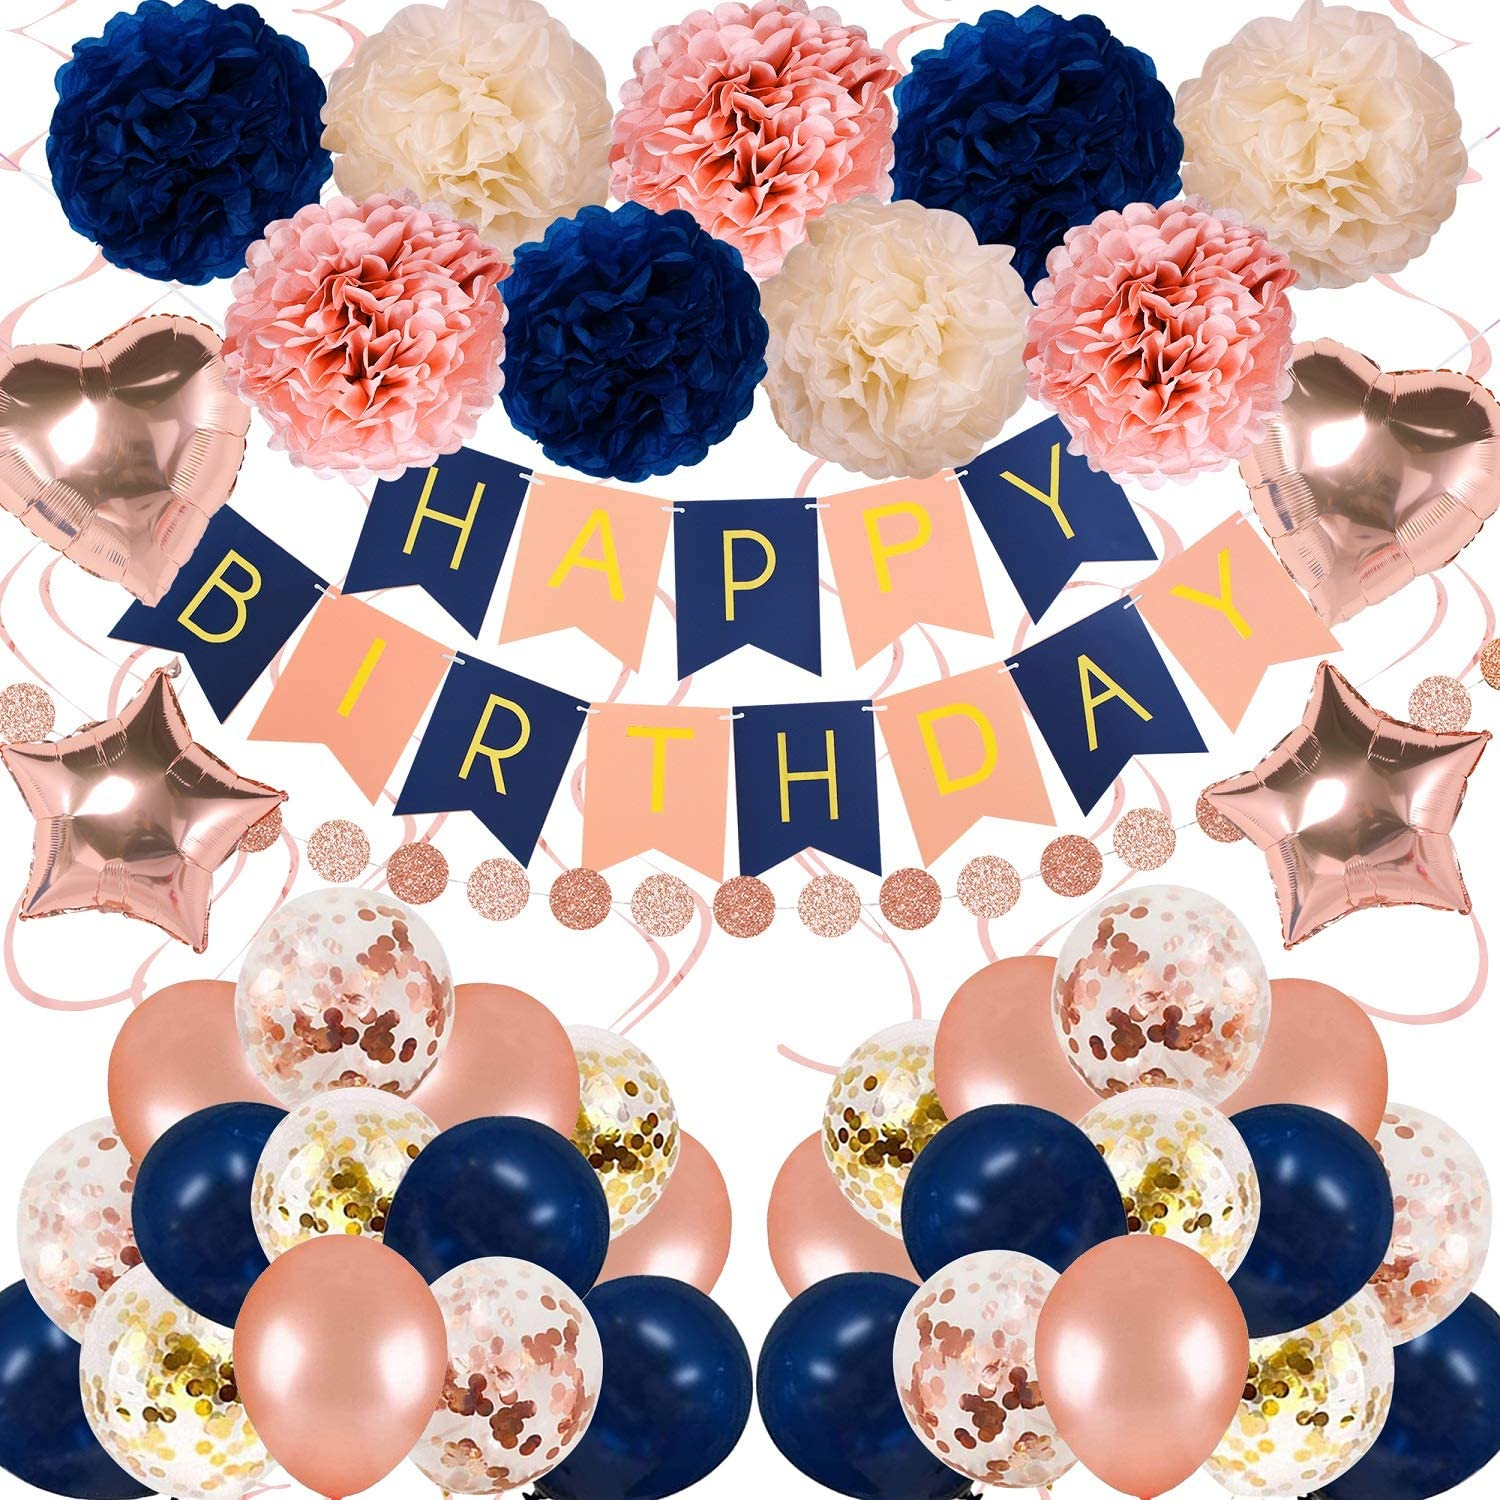 Navy Rose Gold Birthday Decorations 61 Pieces balloon kit with foil Balloons,Flower Pompoms,Round String Suit for 1st 16th 21th 25th 30th 35th 40th 50th 60th, Women Grils Navy Rose gold Birthday Party